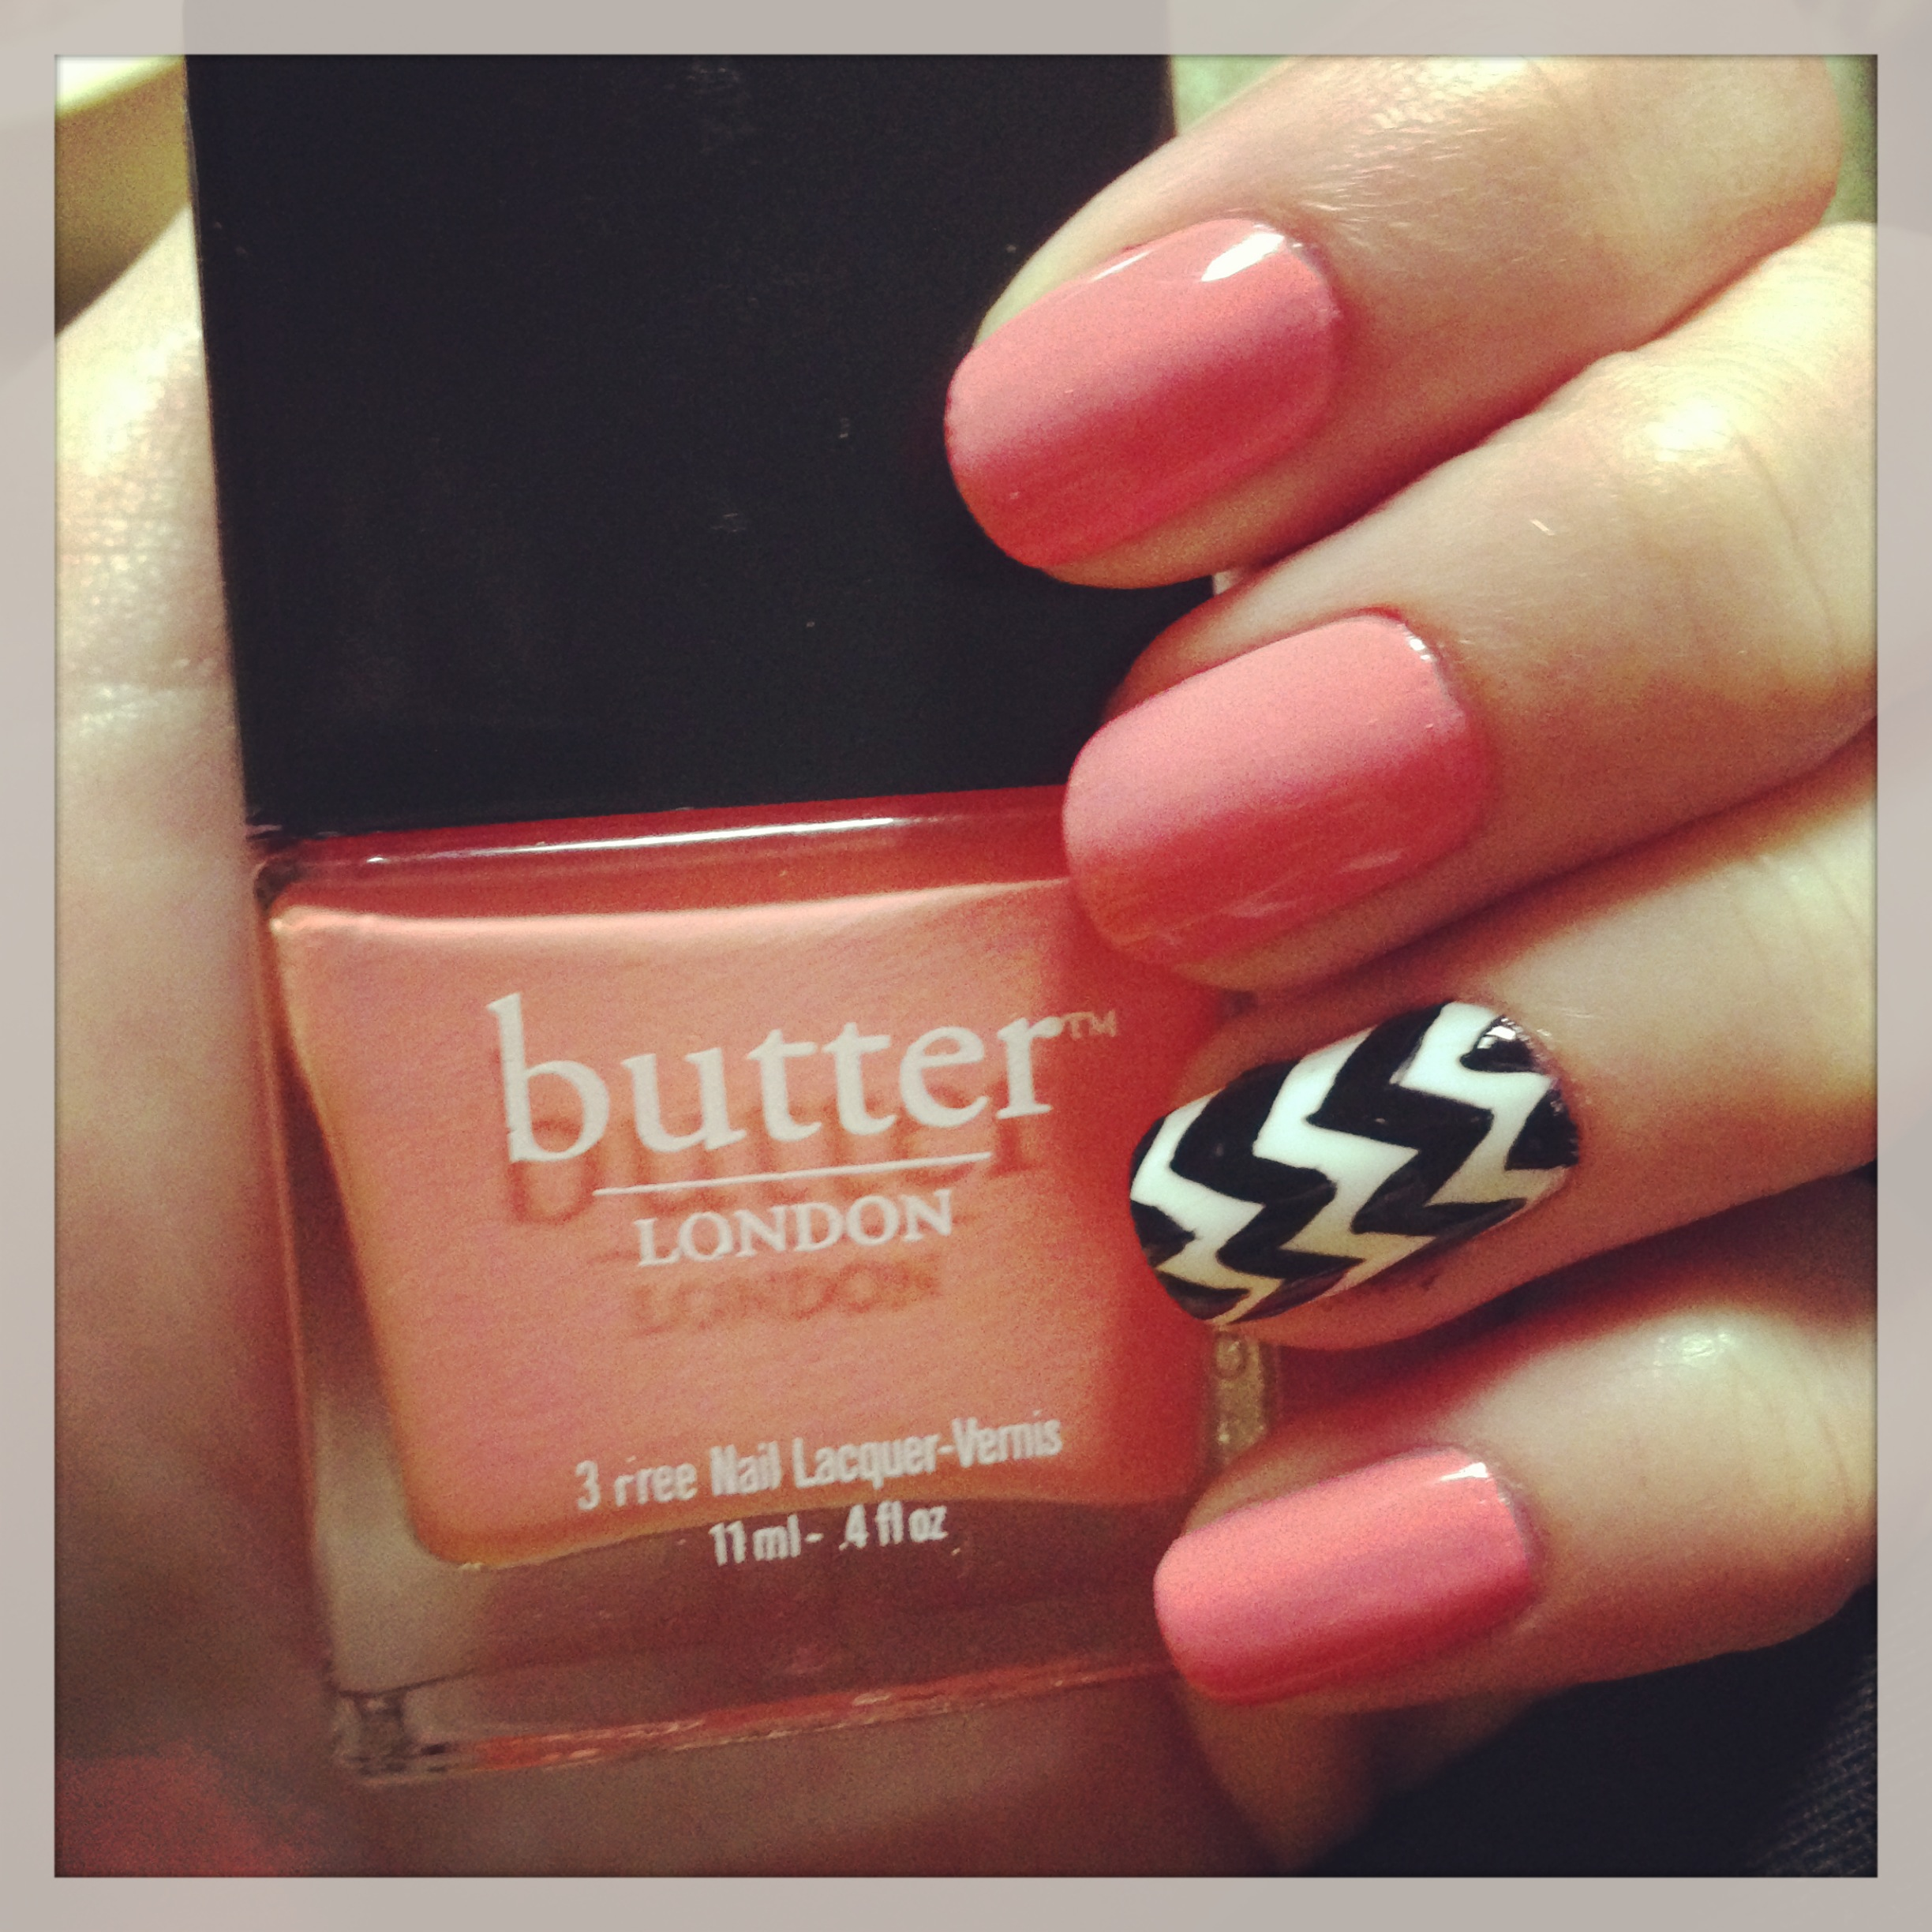 Manicure Monday: Fun with Chevron | The Collabor-eight